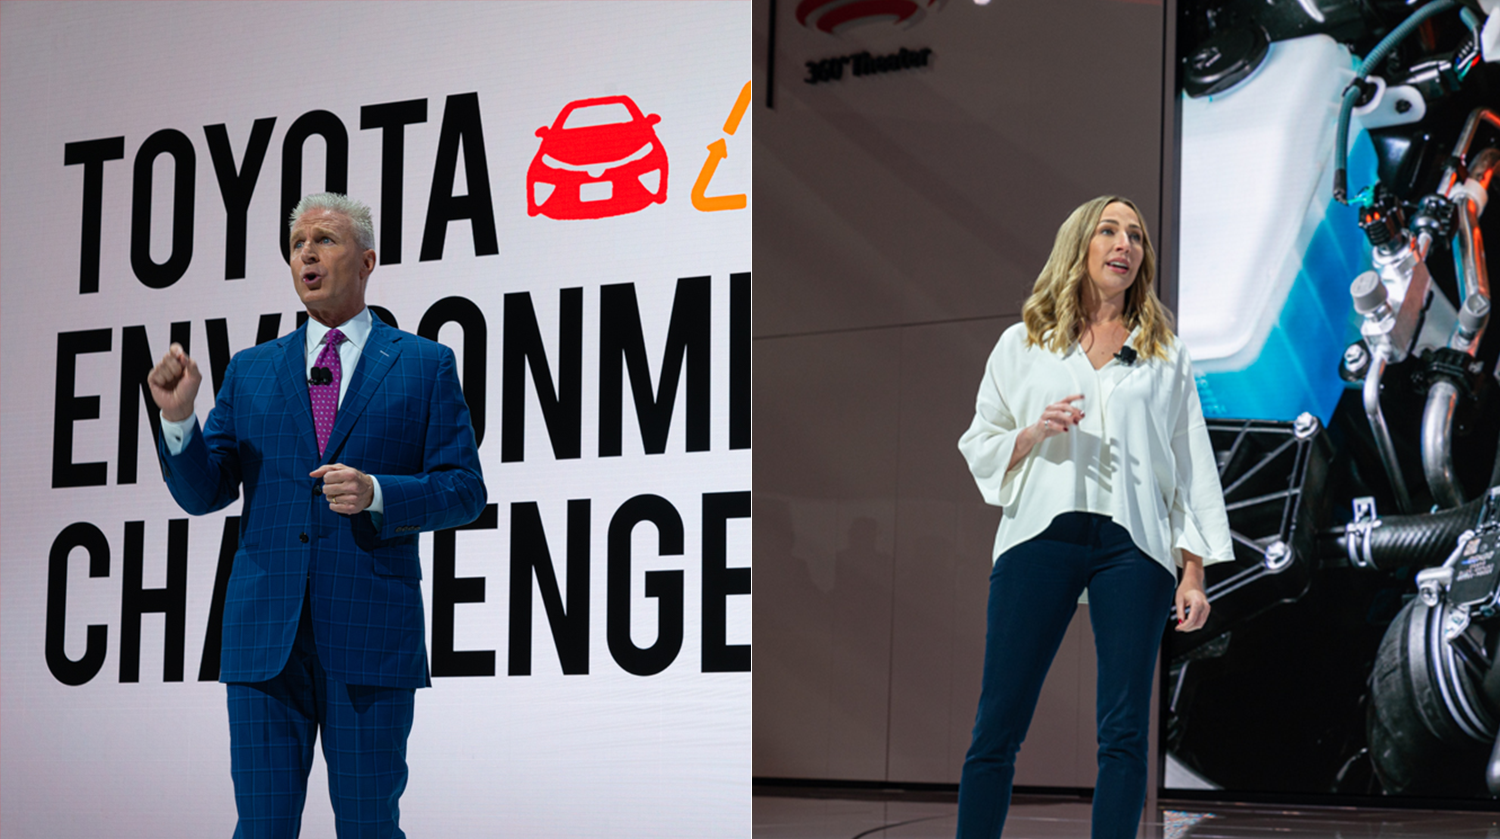 2019 Los Angeles International Auto Show: Toyota Press Conference, Jack Hollis and Jackie Birdsall Remarks